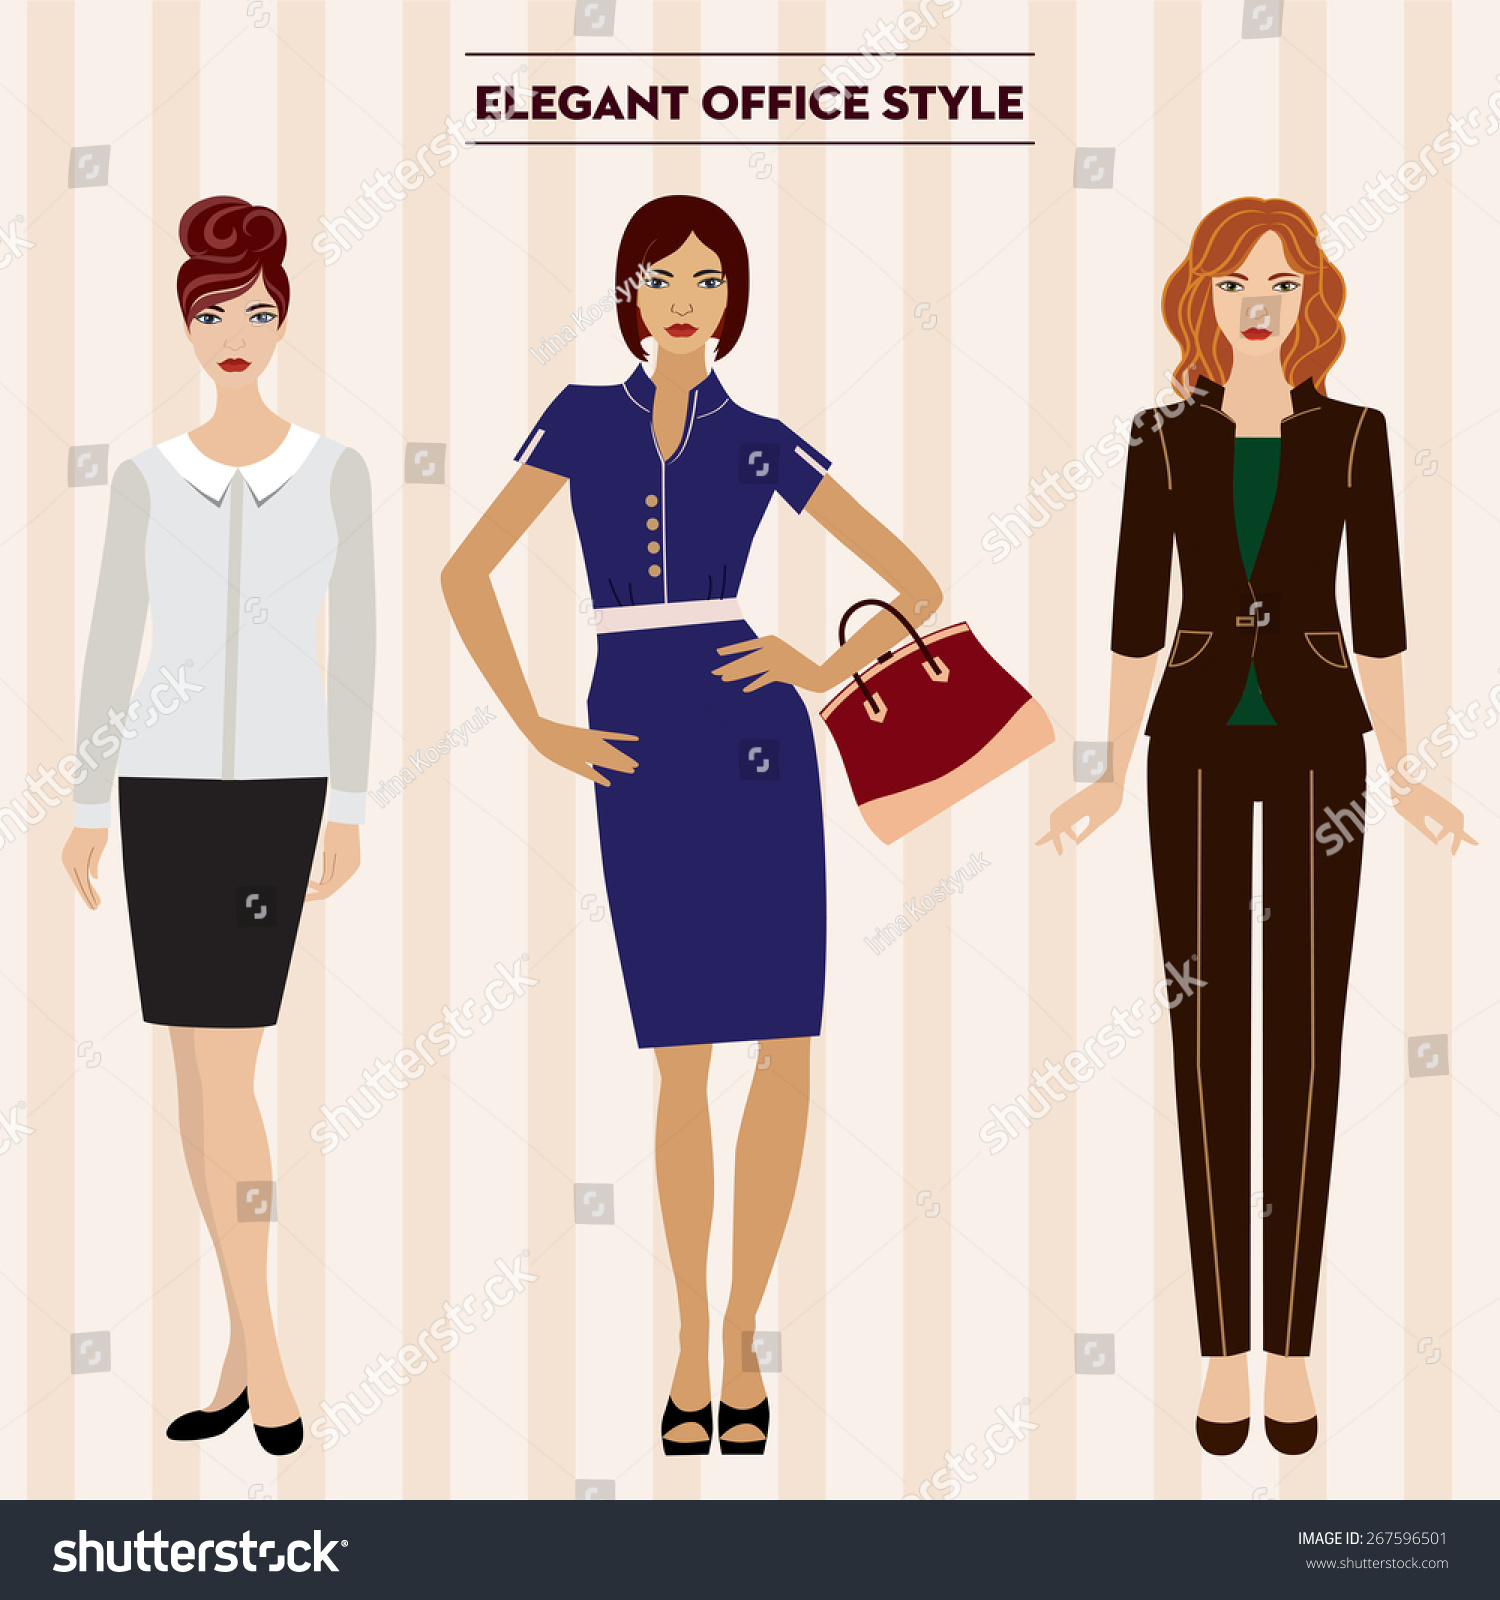 Women Office Clothes Office Working Style Stock Vector 267596501 Shutterstock